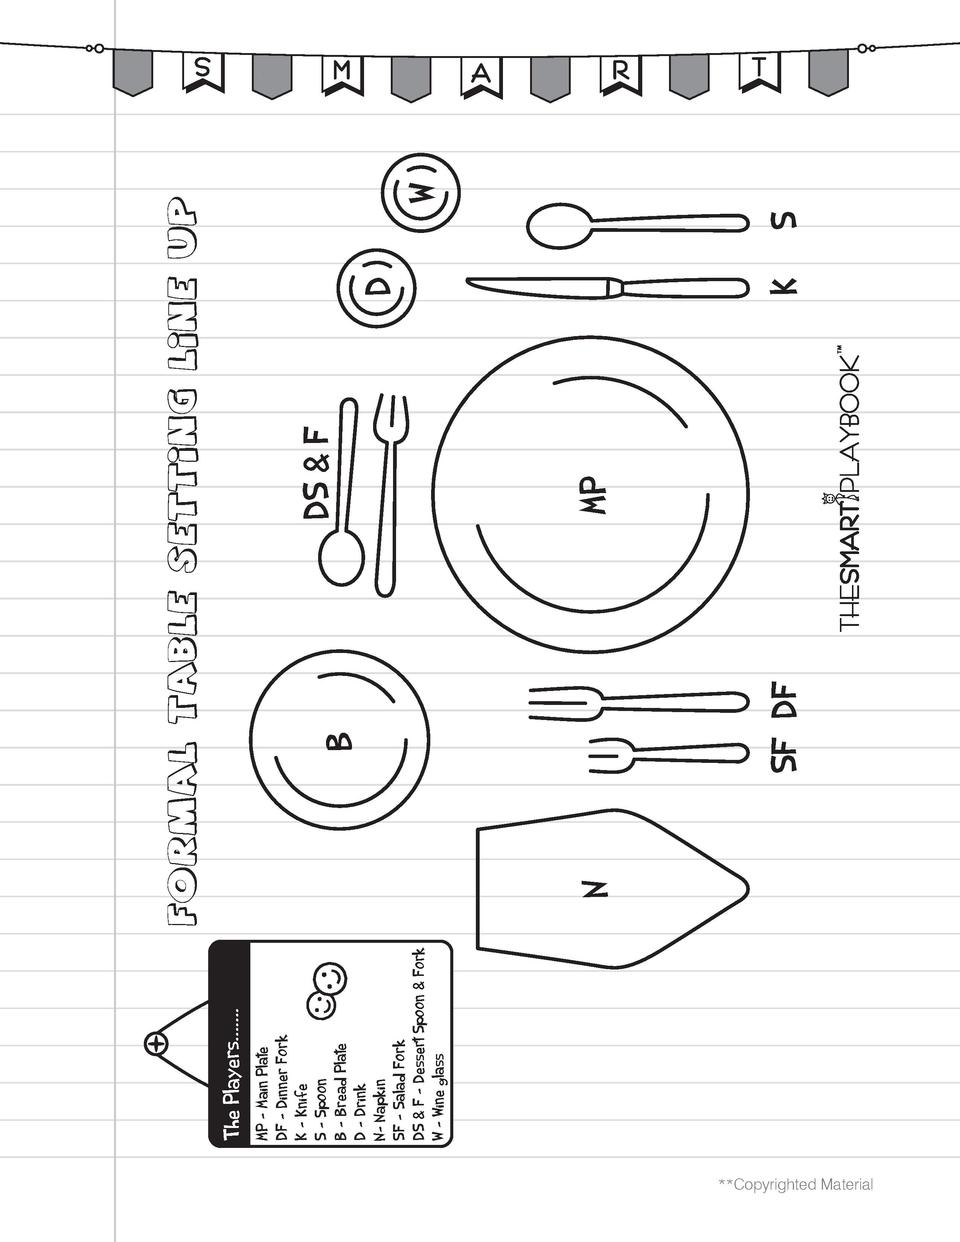 Copyrighted Material  MP     Main Plate DF     Dinner Fork K     Knife S     Spoon B     Bread Plate D     Drink N- Napk...